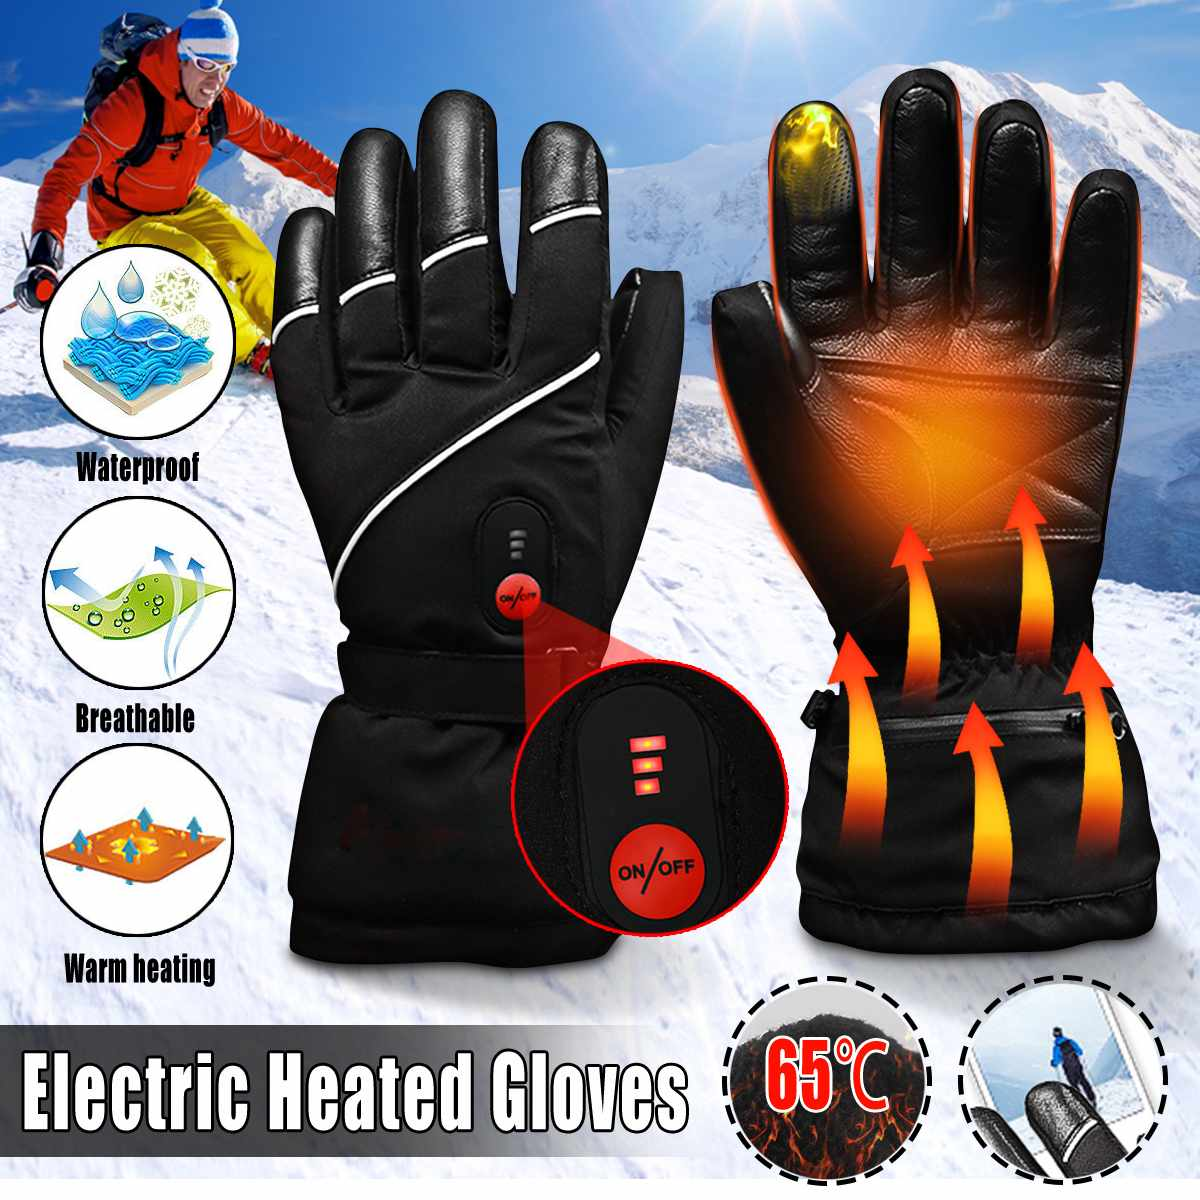 1 Pair Outdoor Indoor Electric Heated Gloves 2200MAH Li-ion Battery Thermal Warm Cycling Skiing Hiking Waterproof Winter Warmer1 Pair Outdoor Indoor Electric Heated Gloves 2200MAH Li-ion Battery Thermal Warm Cycling Skiing Hiking Waterproof Winter Warmer